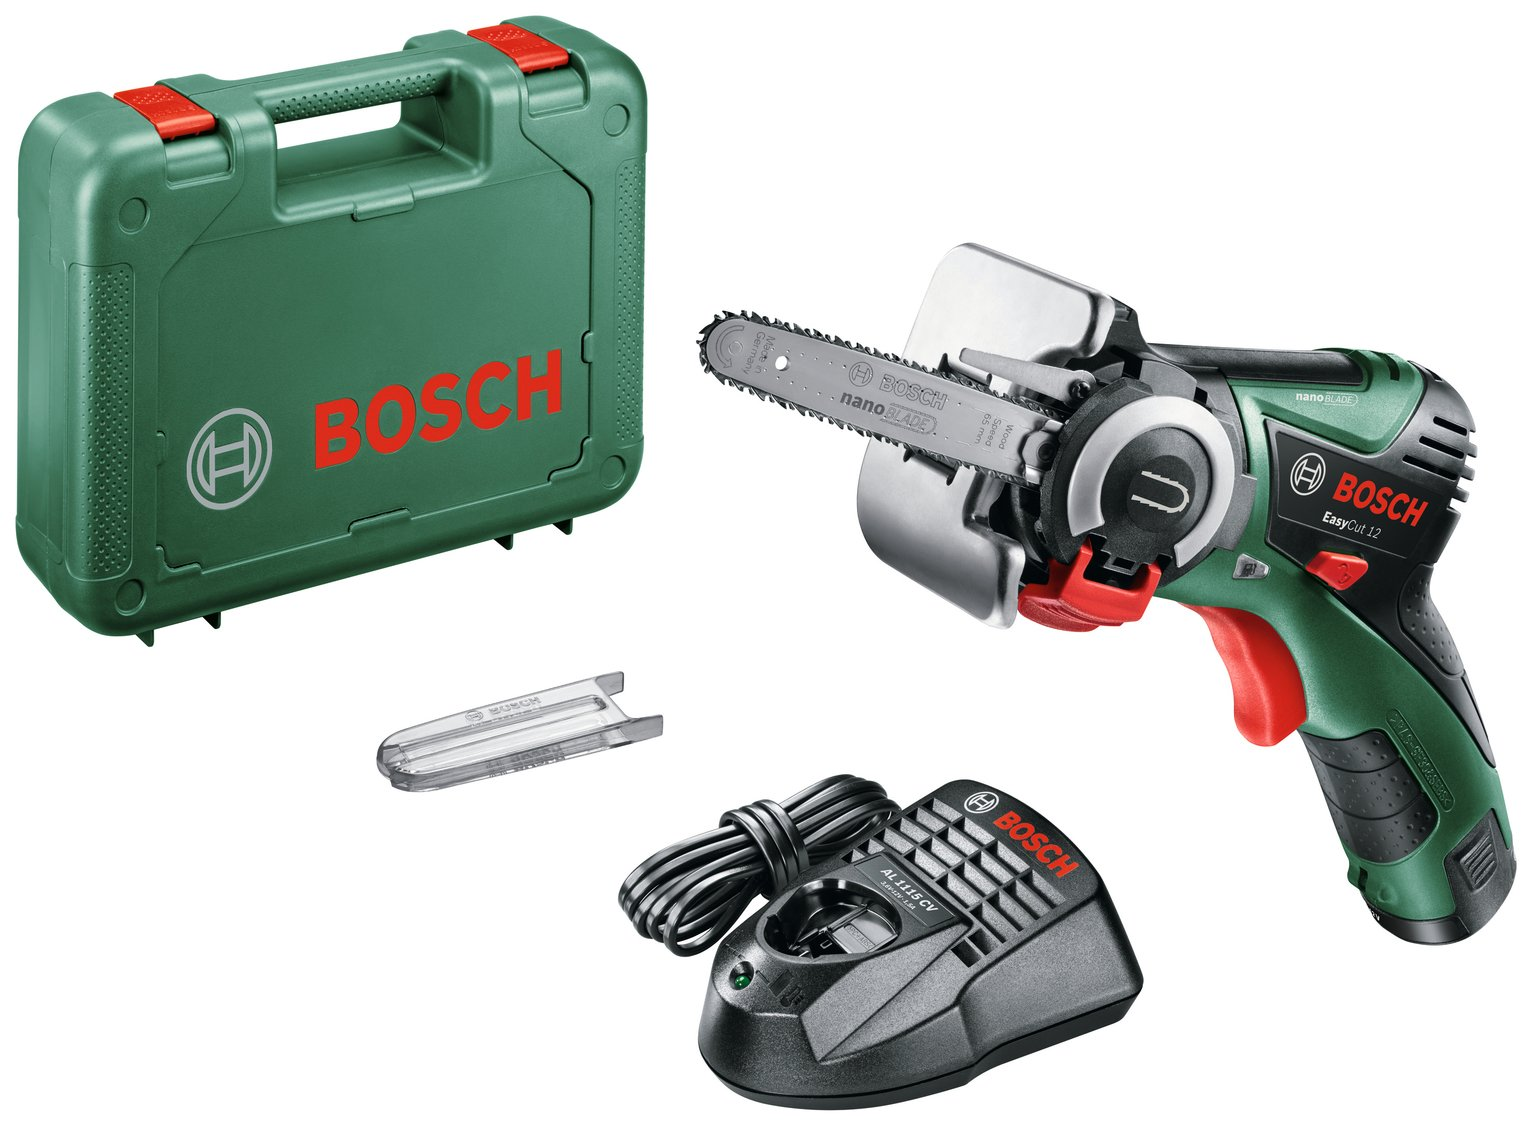 sale on bosch easycut 12 cordless garden saw 12v specials now available our best price on bosc. Black Bedroom Furniture Sets. Home Design Ideas